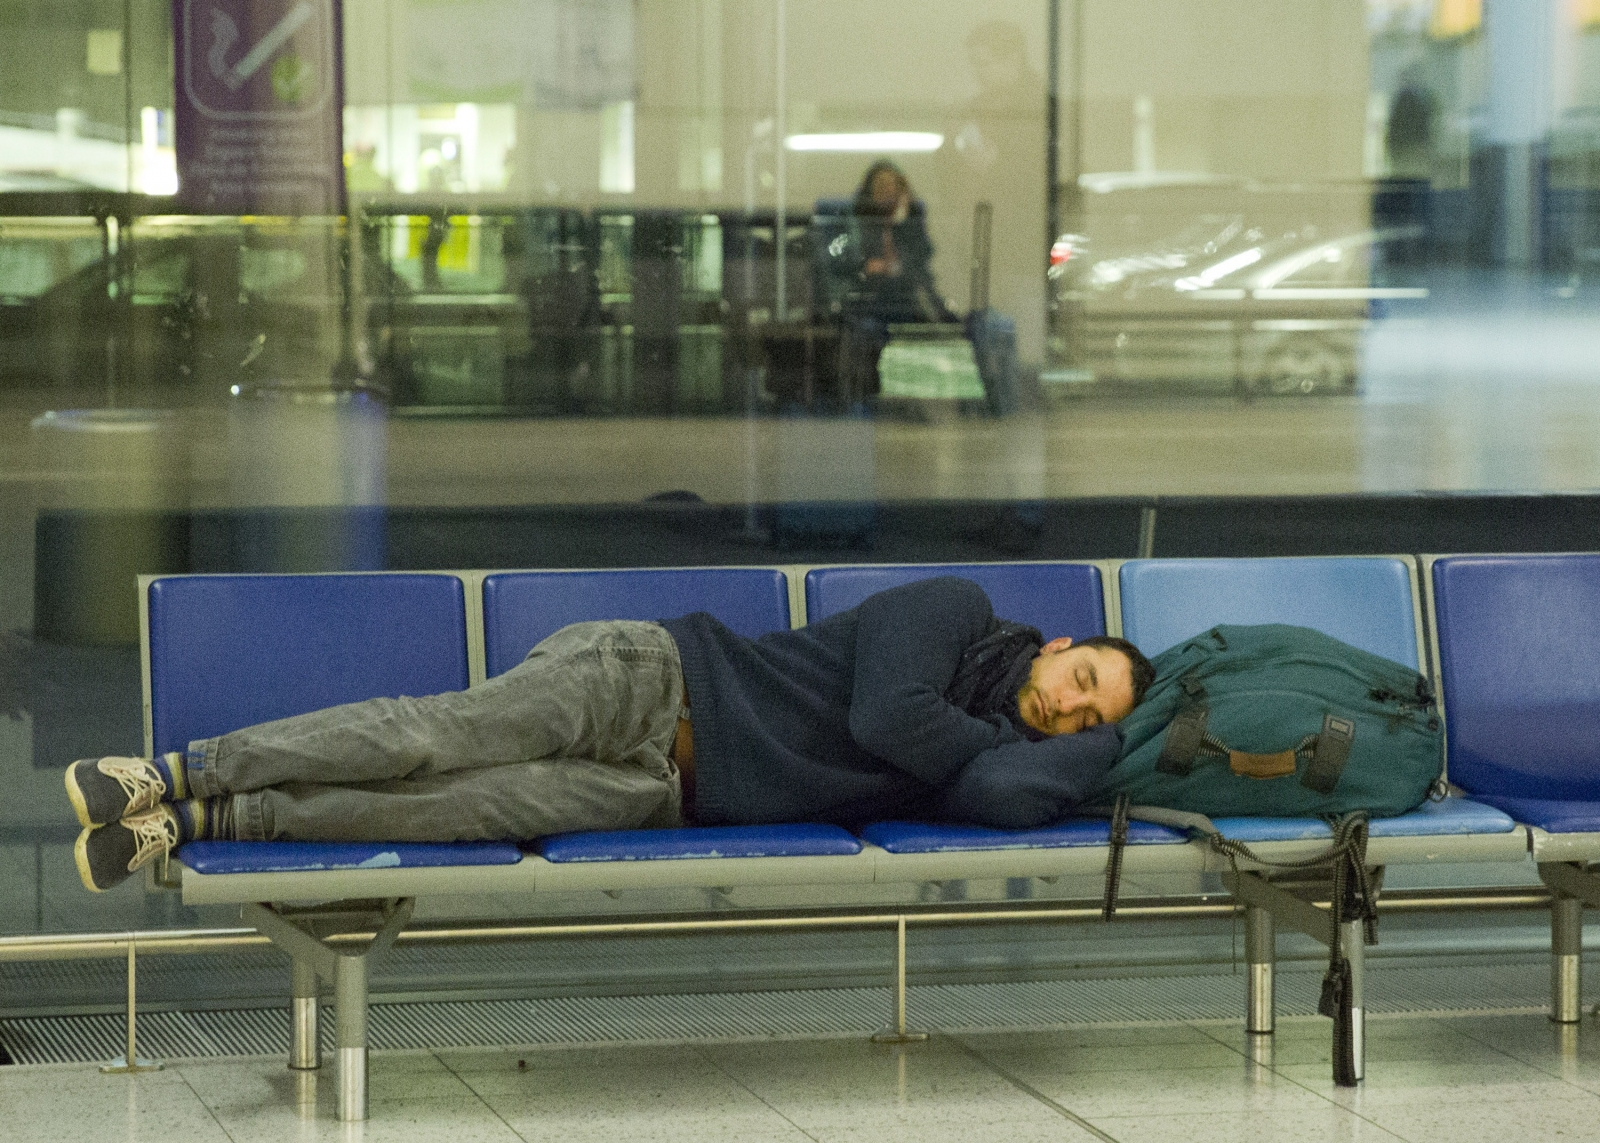 A man gets some rest at Gatwick, after an air traffic control systems failure caused traffic chaos. (Getty)